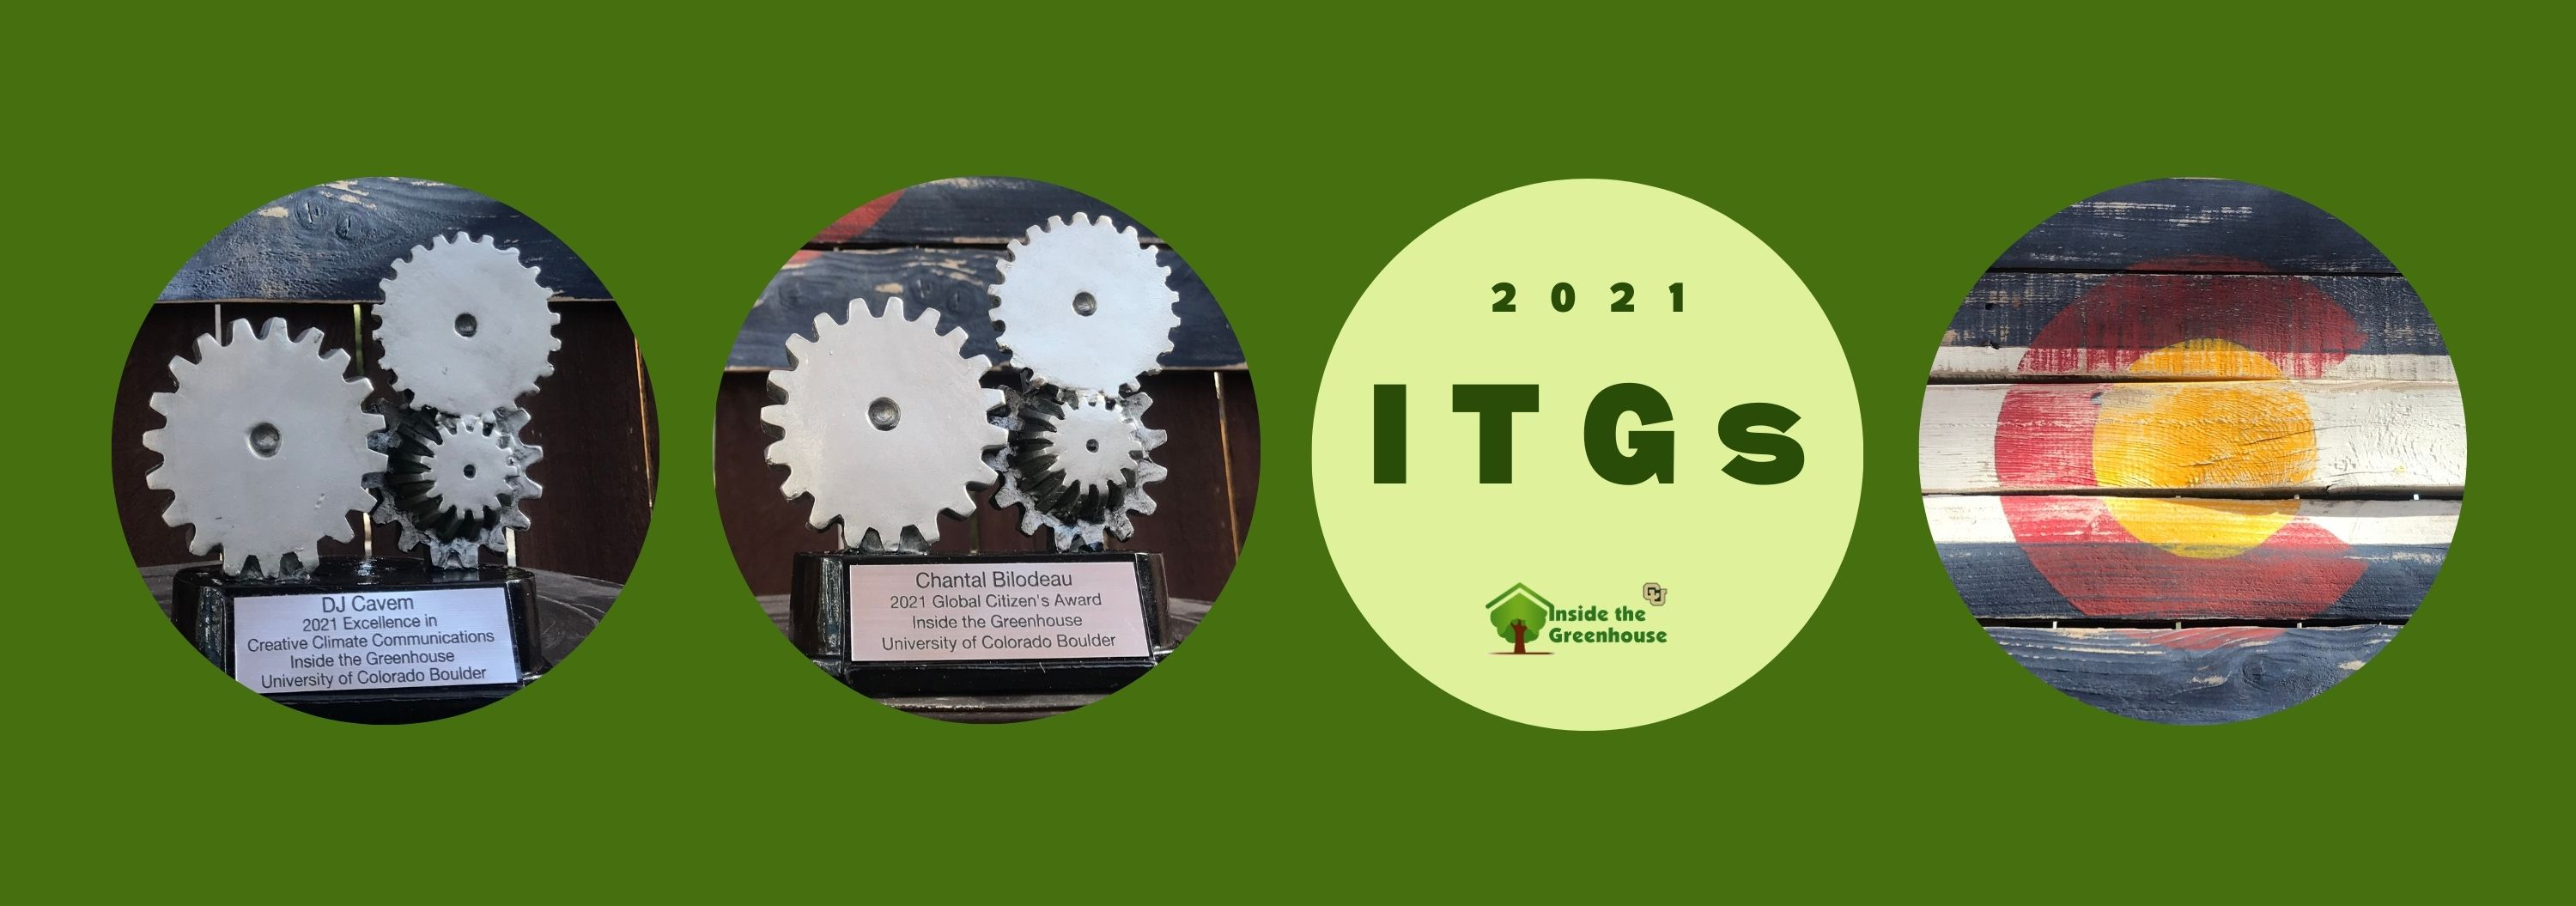 Annual ITGs (Inside the Greenhouse Award) Winners Banner